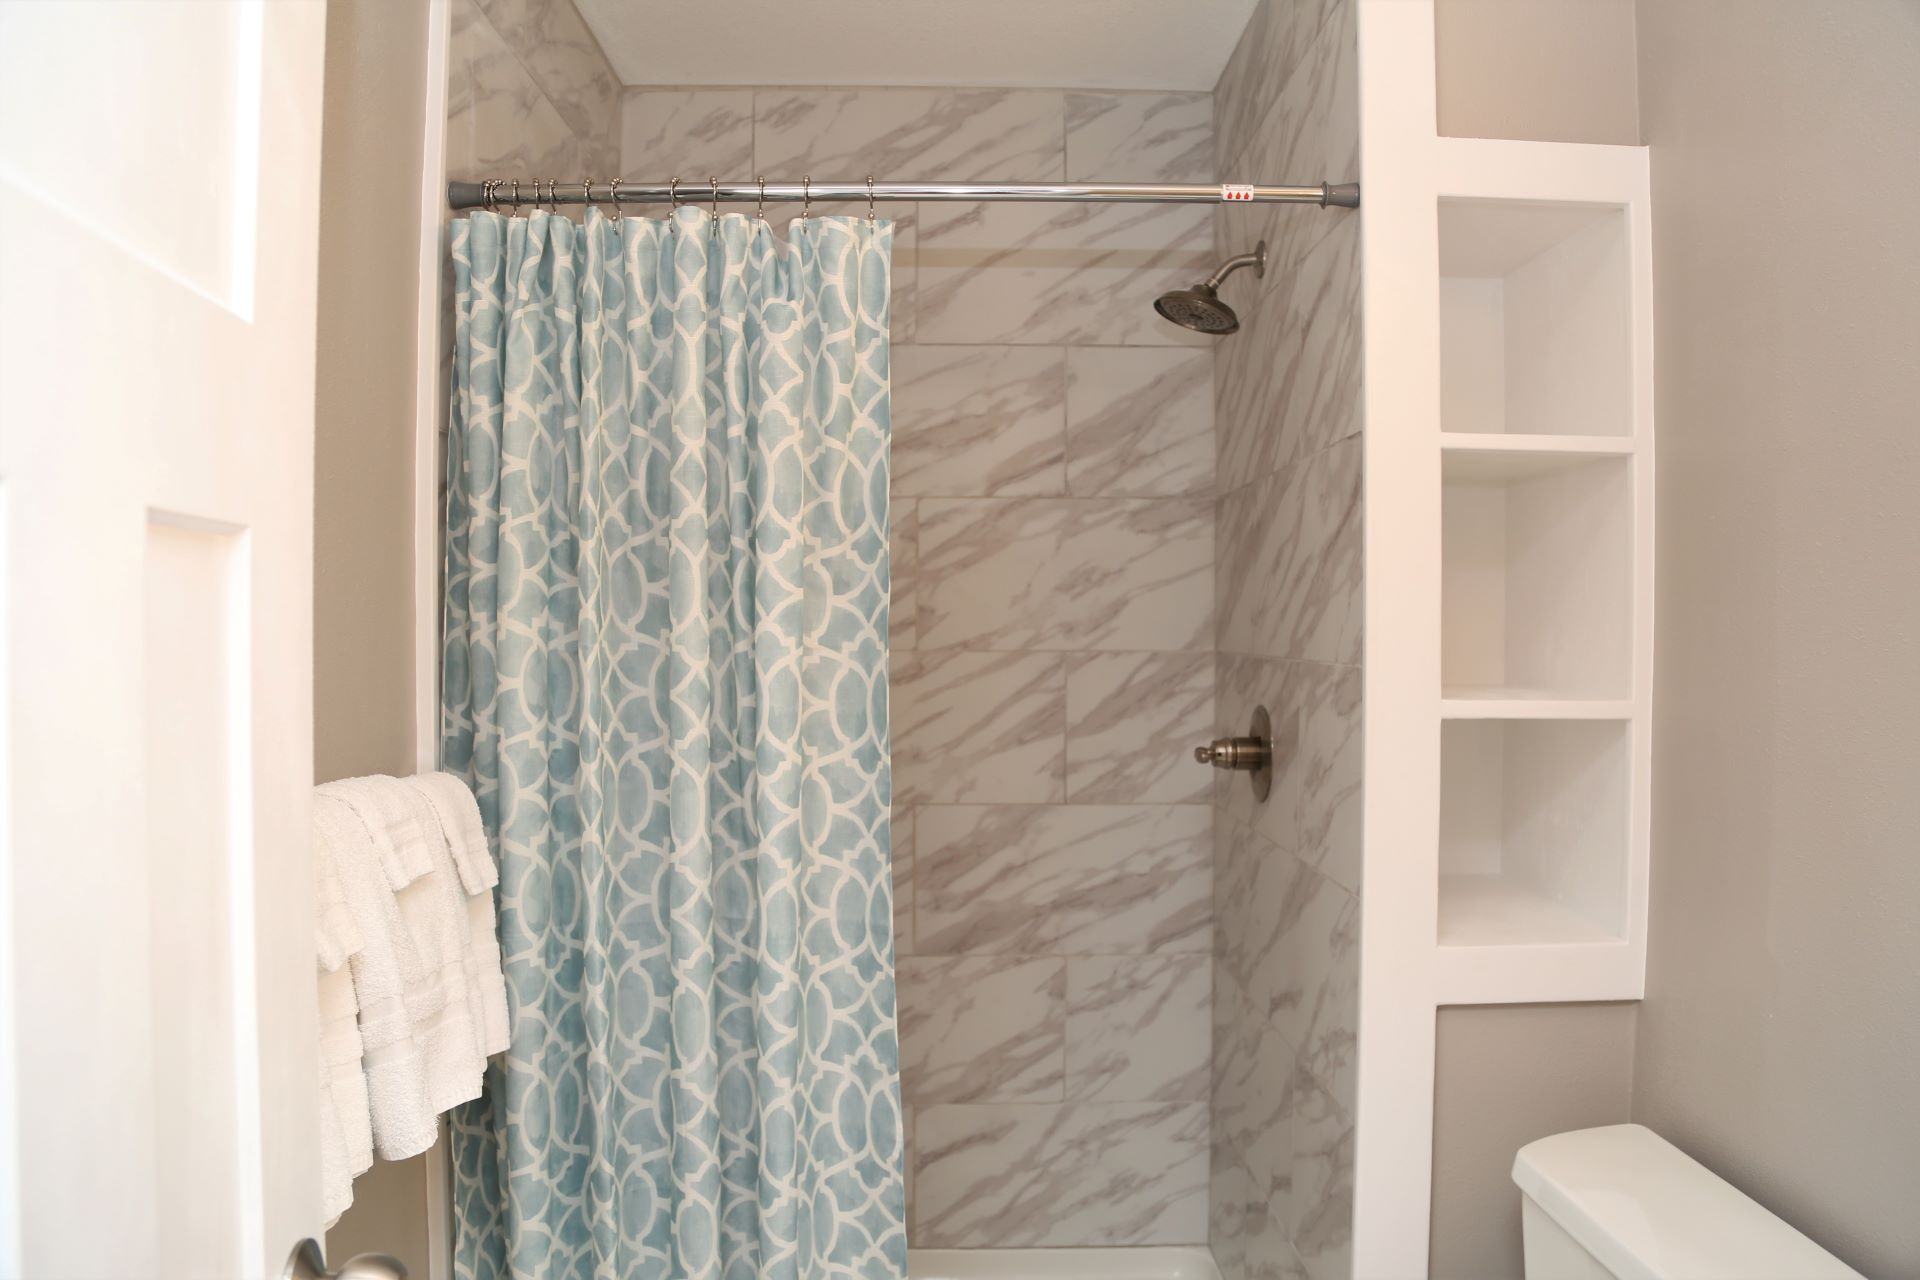 Remodeled second bathroom - tiled shower, new fixtures, fres